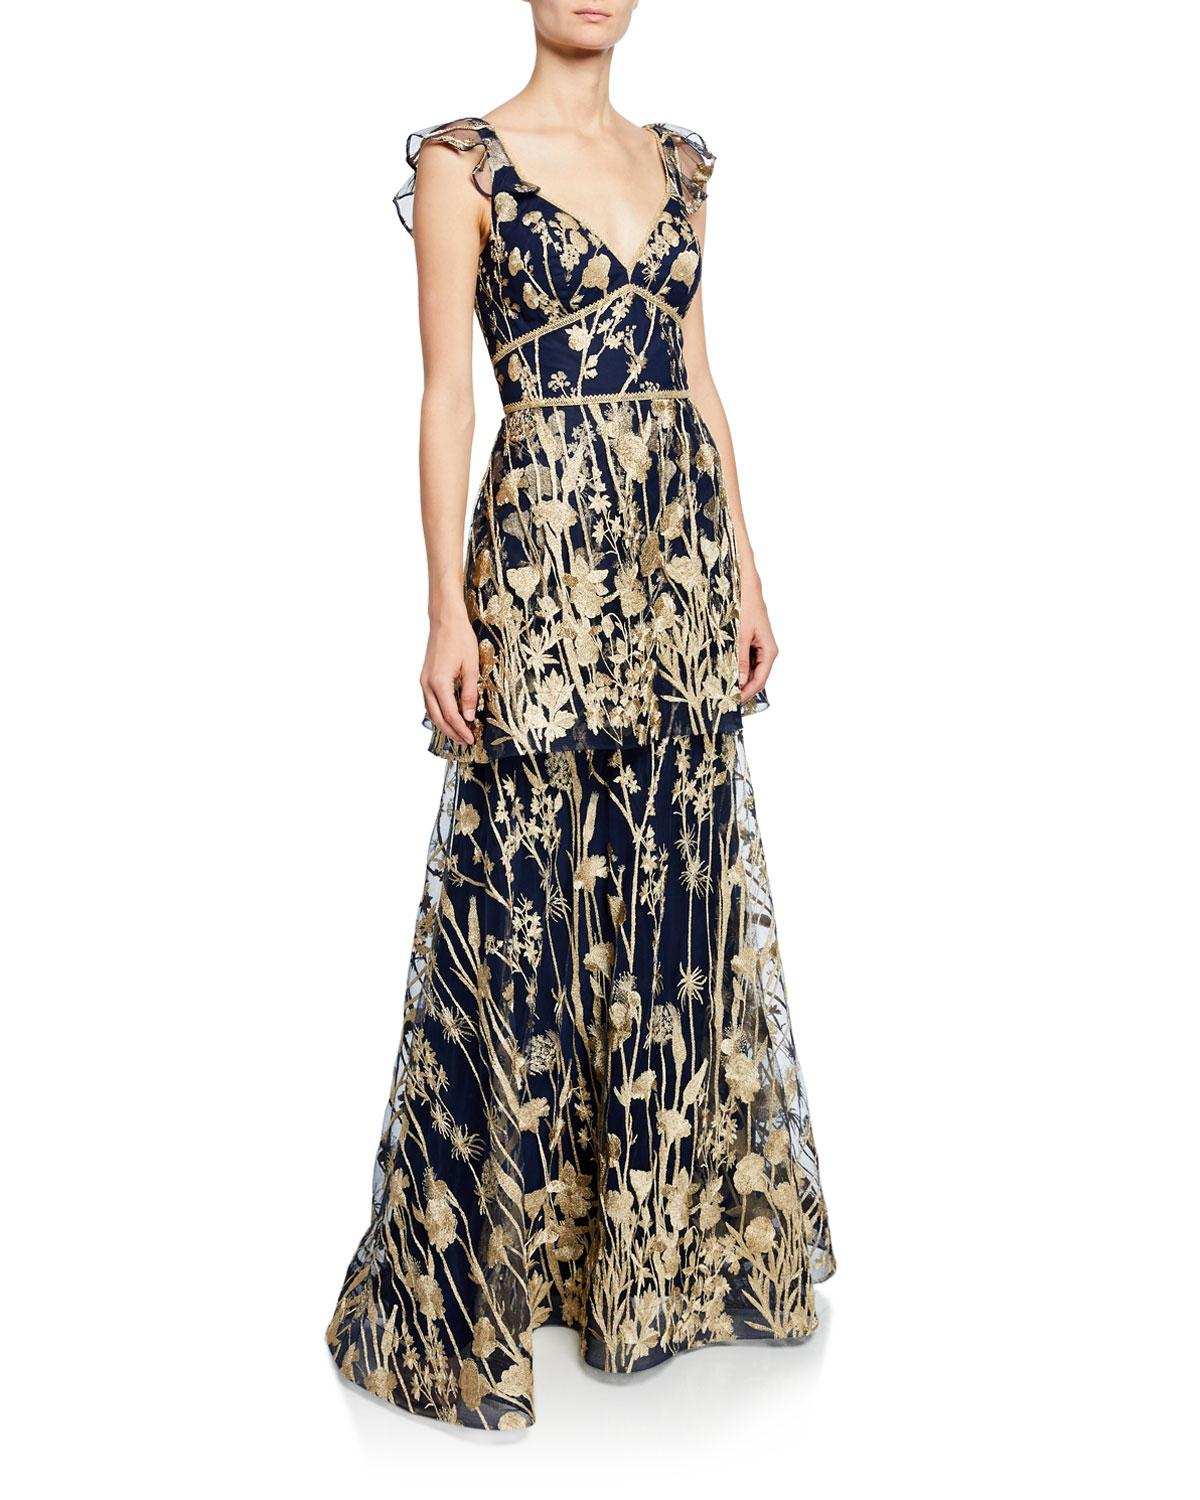 d0a8f5b0 Marchesa notte. Women's Blue V-neck Sleeveless Tiered Floral-embroidered  Gown ...